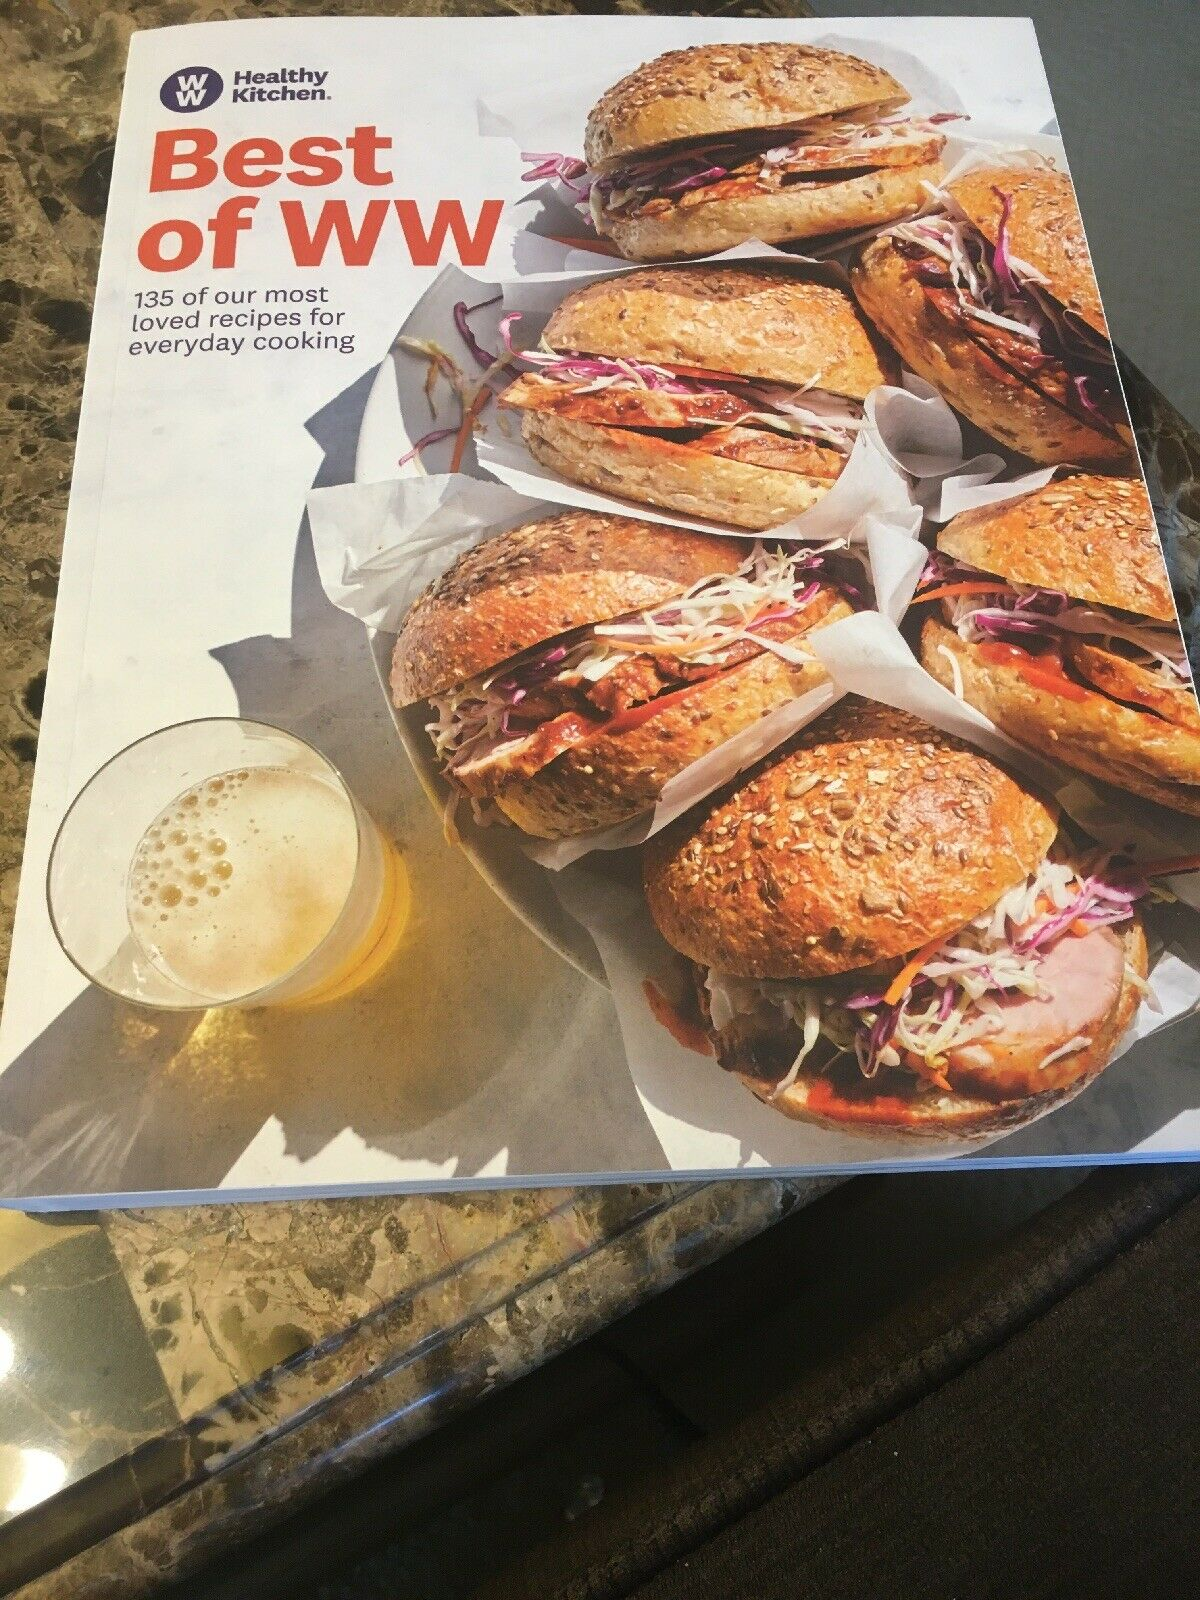 Best of WW Weight Watchers Healthy Kitchen Cookbook (2019) 135 Recipes